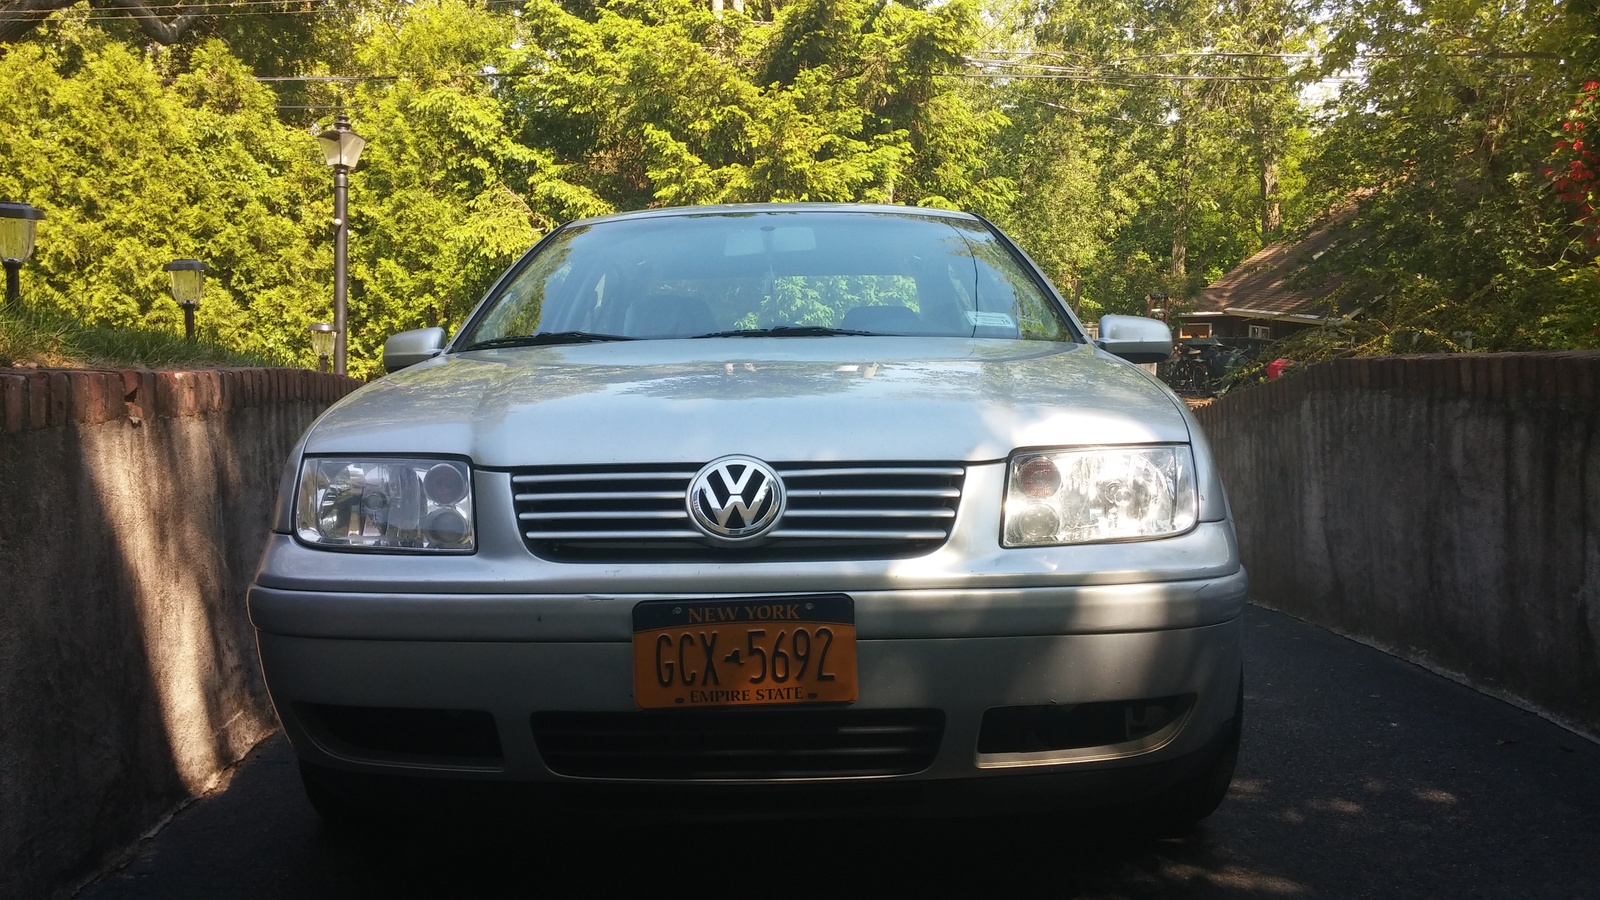 Volkswagen Jetta 1.9 2000 photo - 10